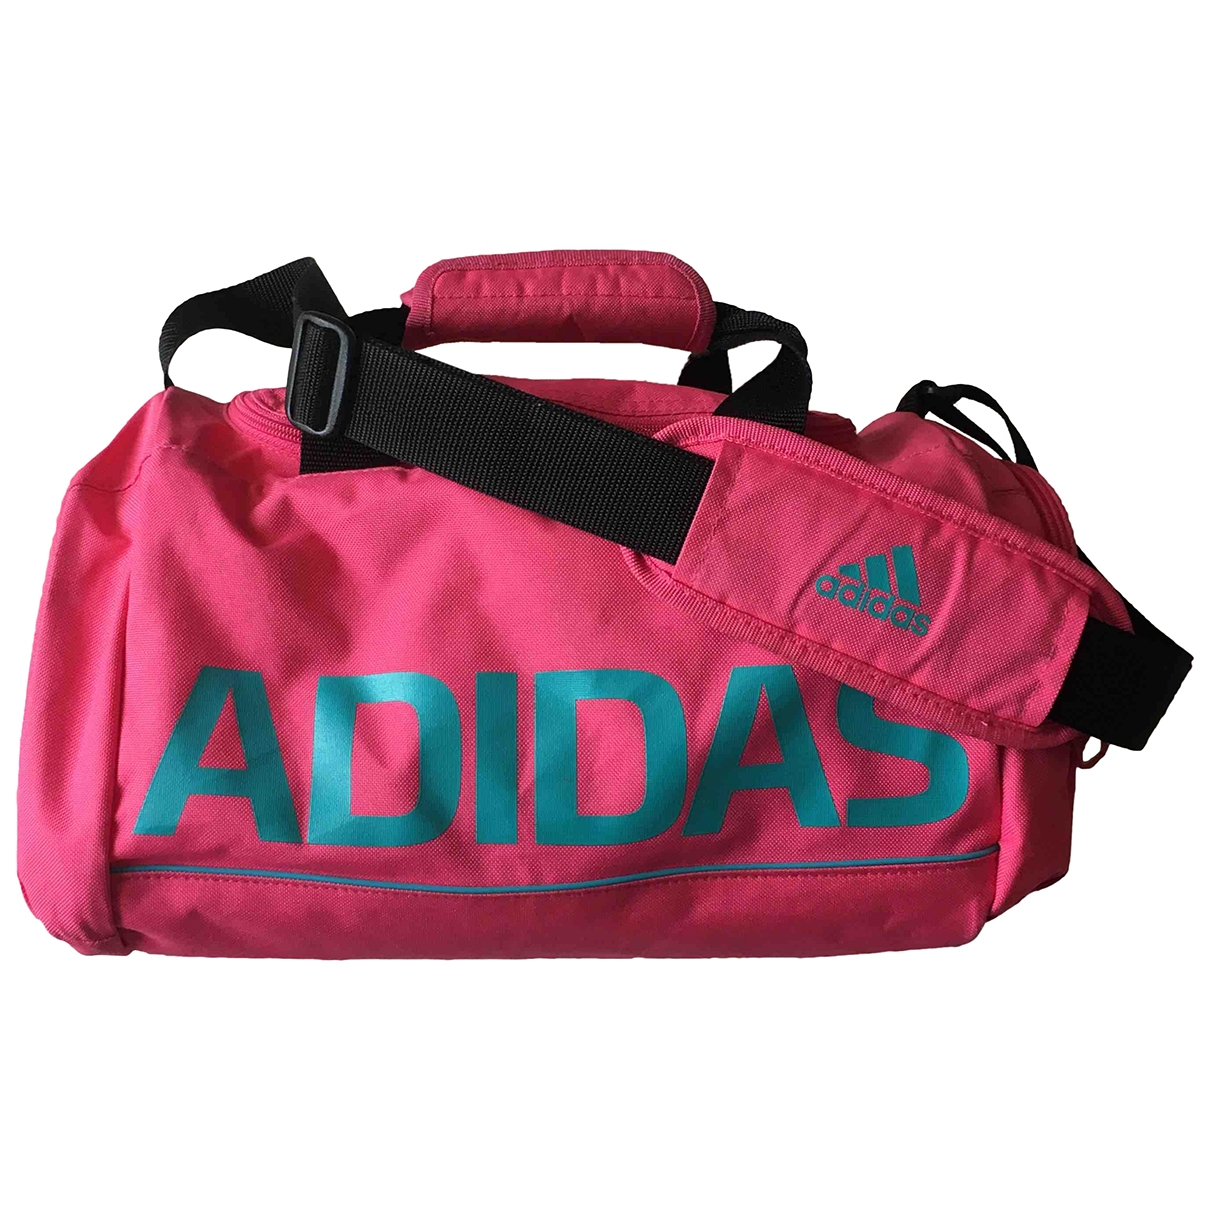 Adidas \N Pink Travel bag for Women \N